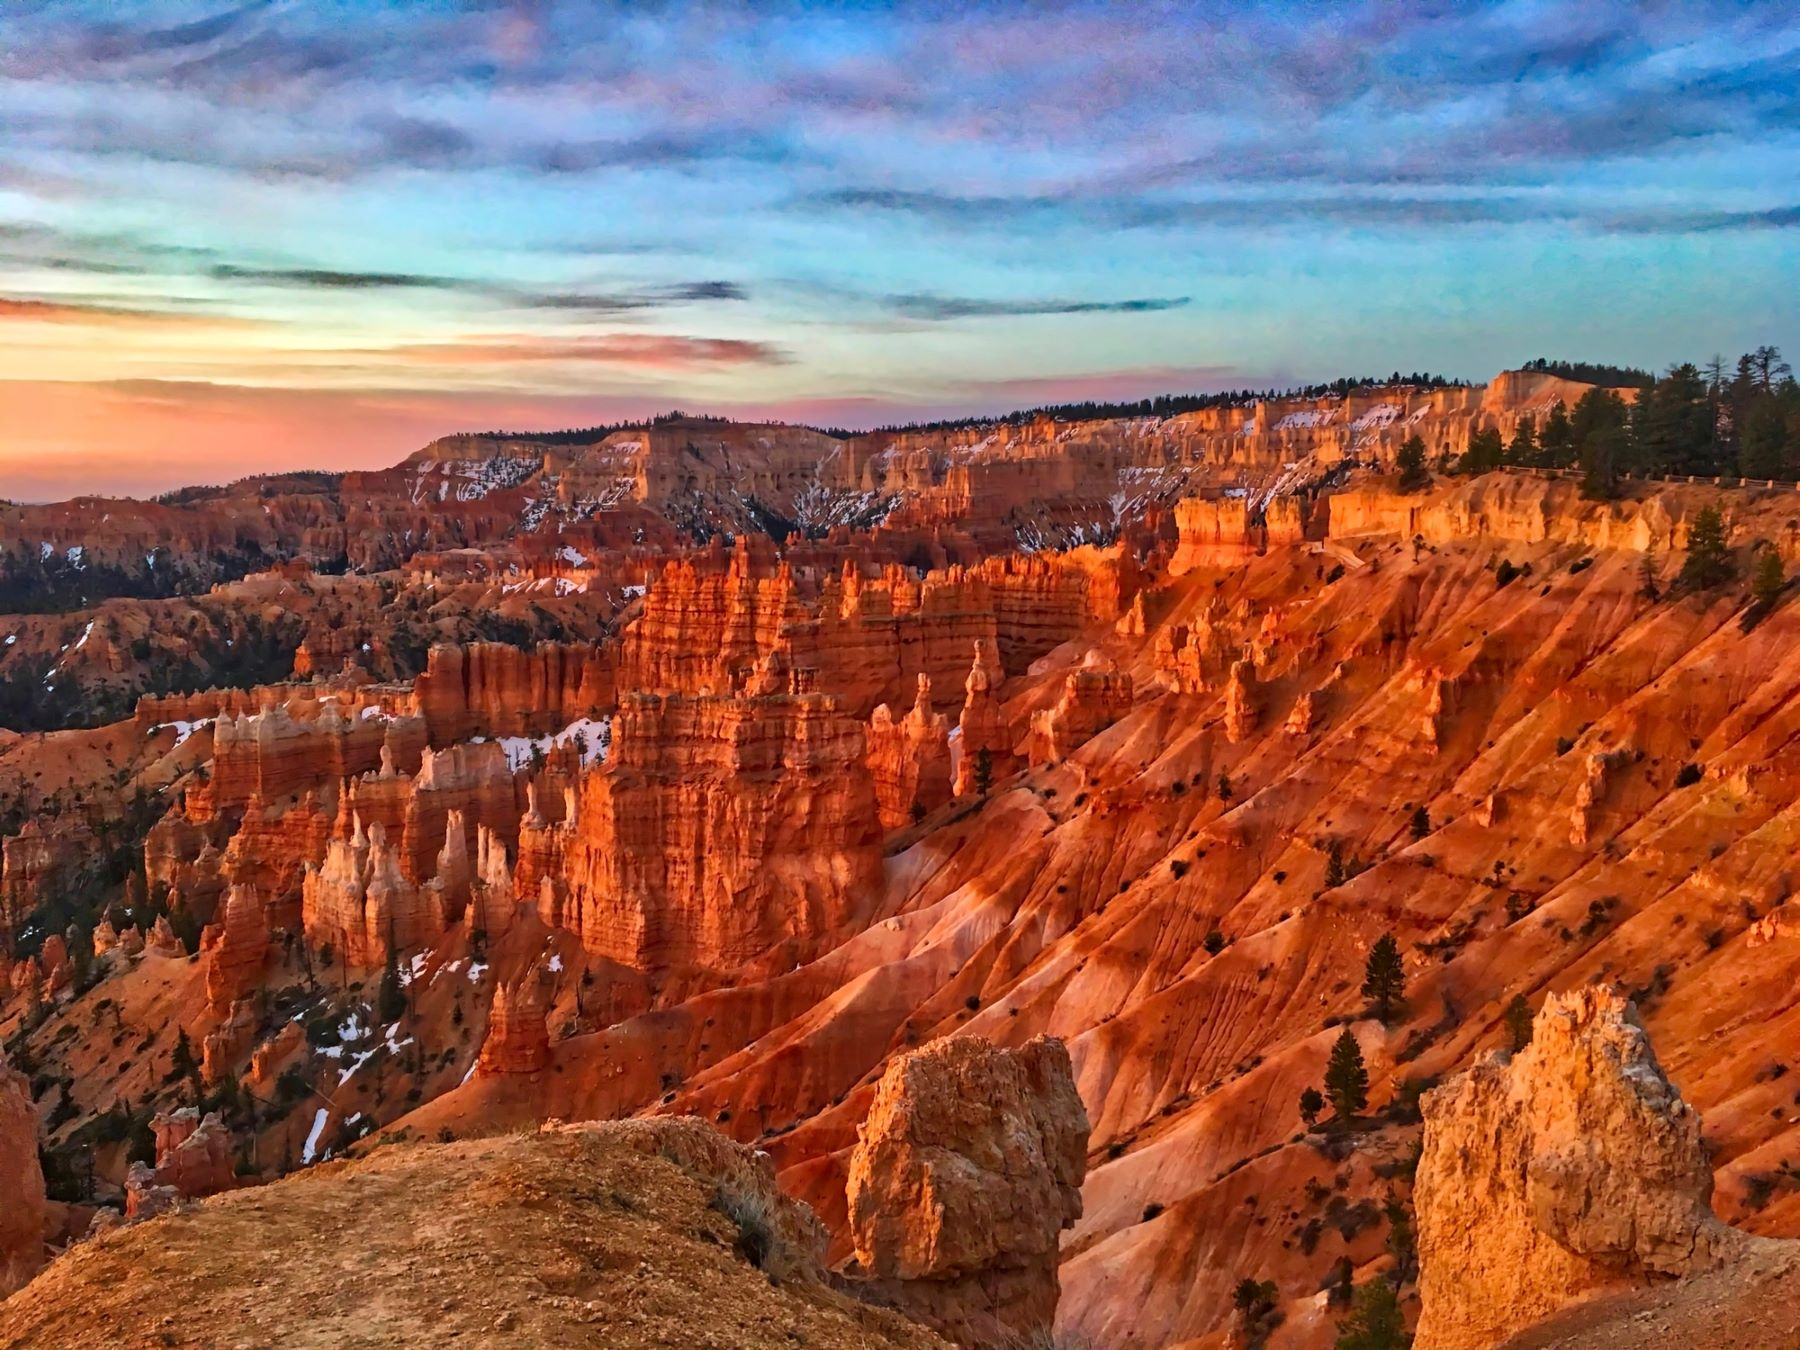 Bryce Canyon National Park during sunset